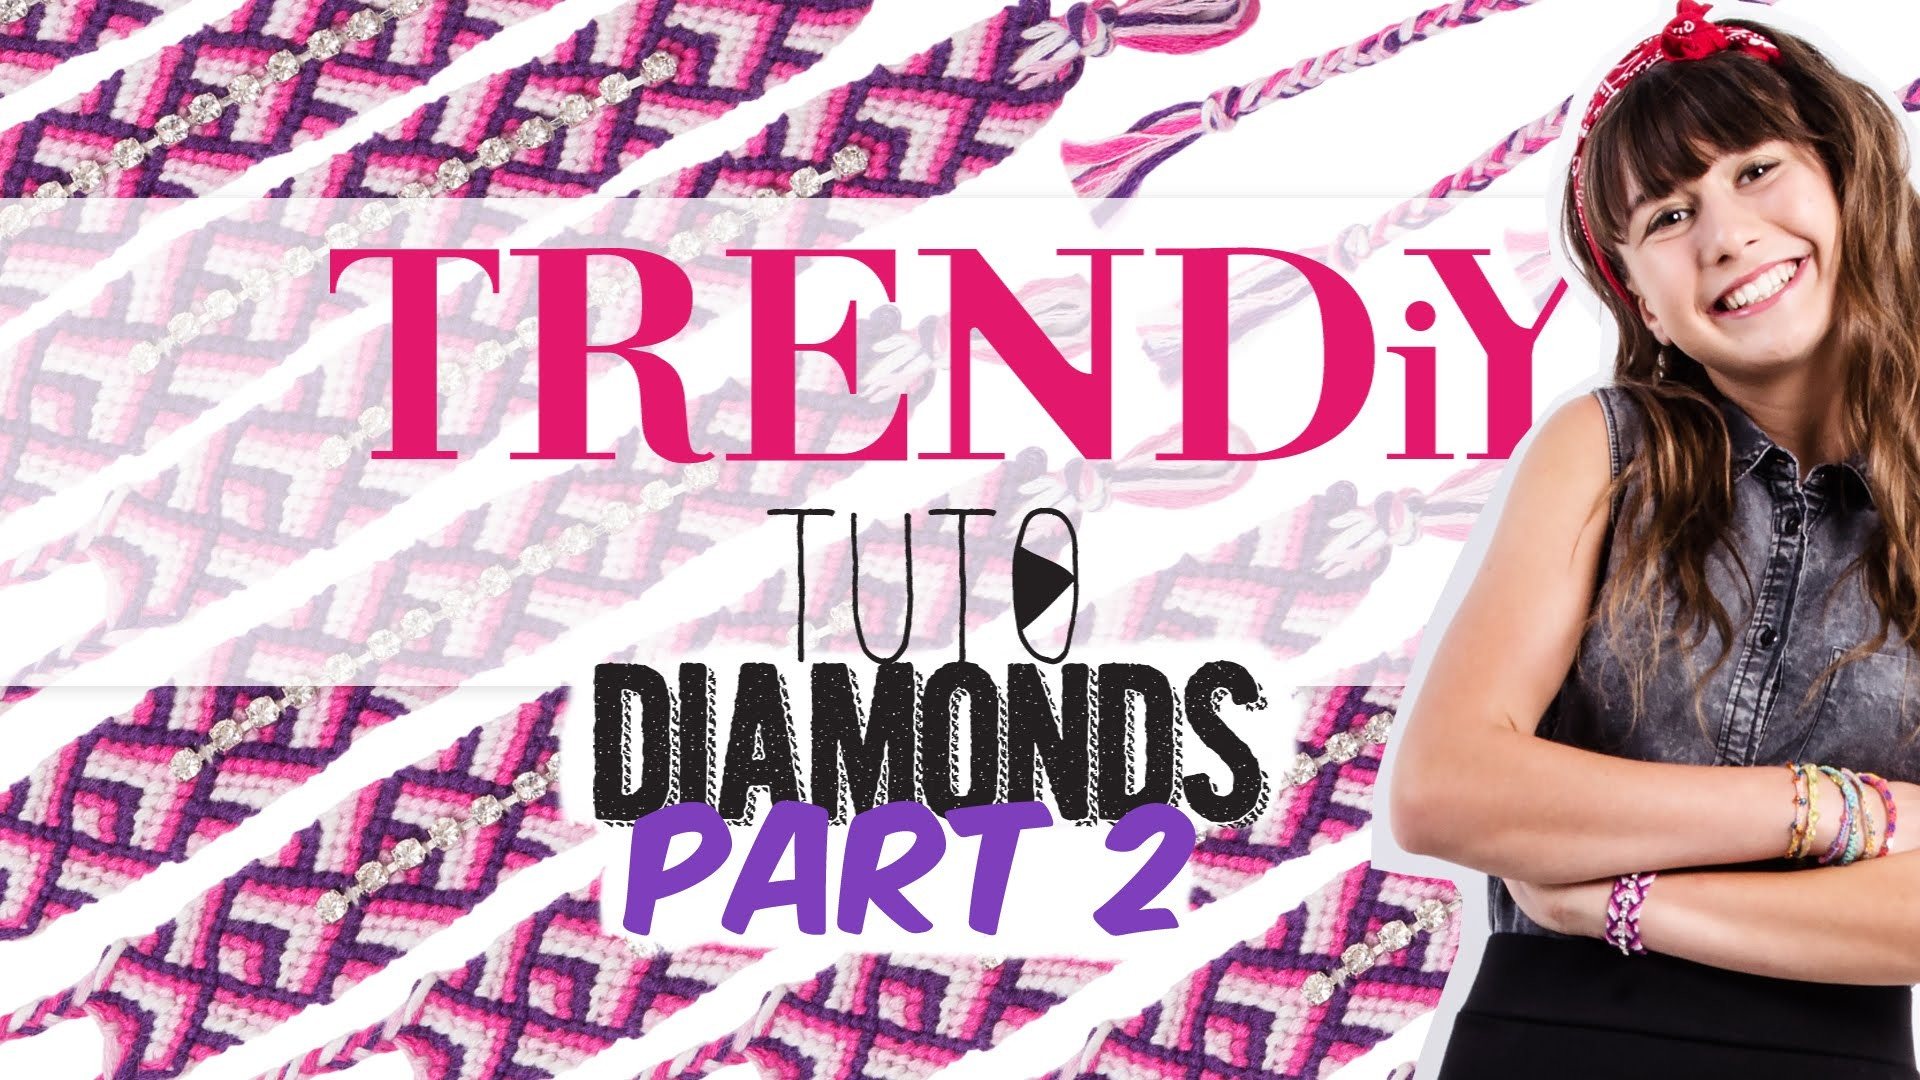 TUTO DIY TRENDIY ART - Friendship Diamond Bracelets  Part 2